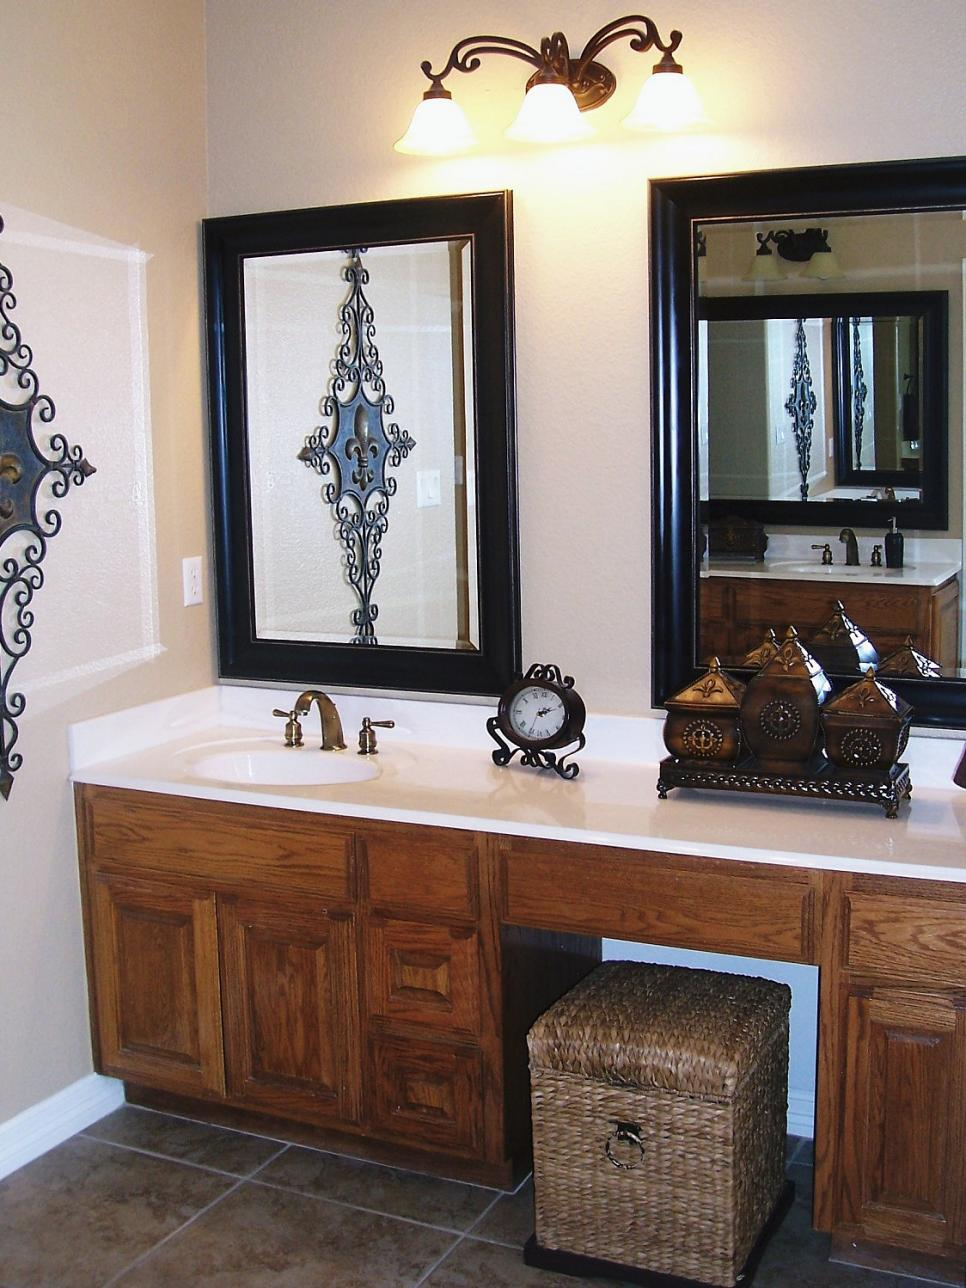 10 beautiful bathroom mirrors hgtv - Bathroom Ideas Mirrors